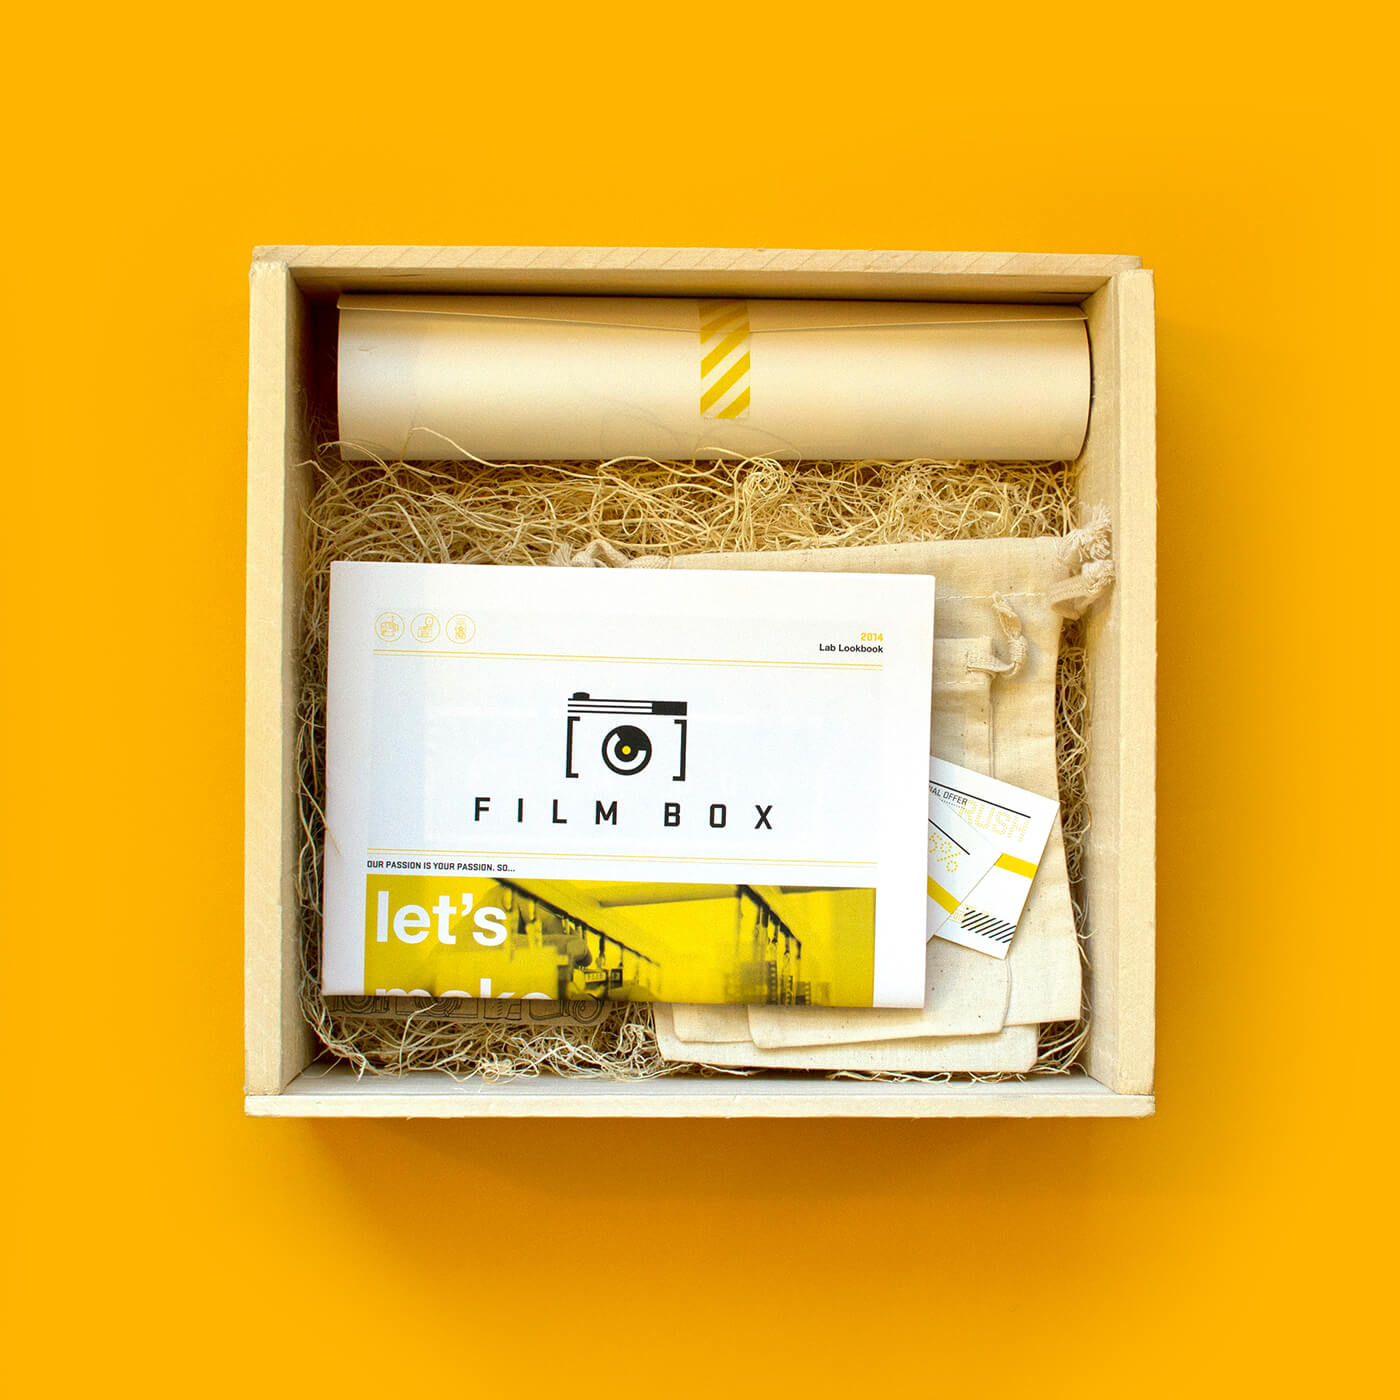 Film Box - A tactile and experiential marketing kit designed for Film Box, a photo development lab in Nashville, to send out to professional photographers and celebrate the beauty and process of film photography.View Project →